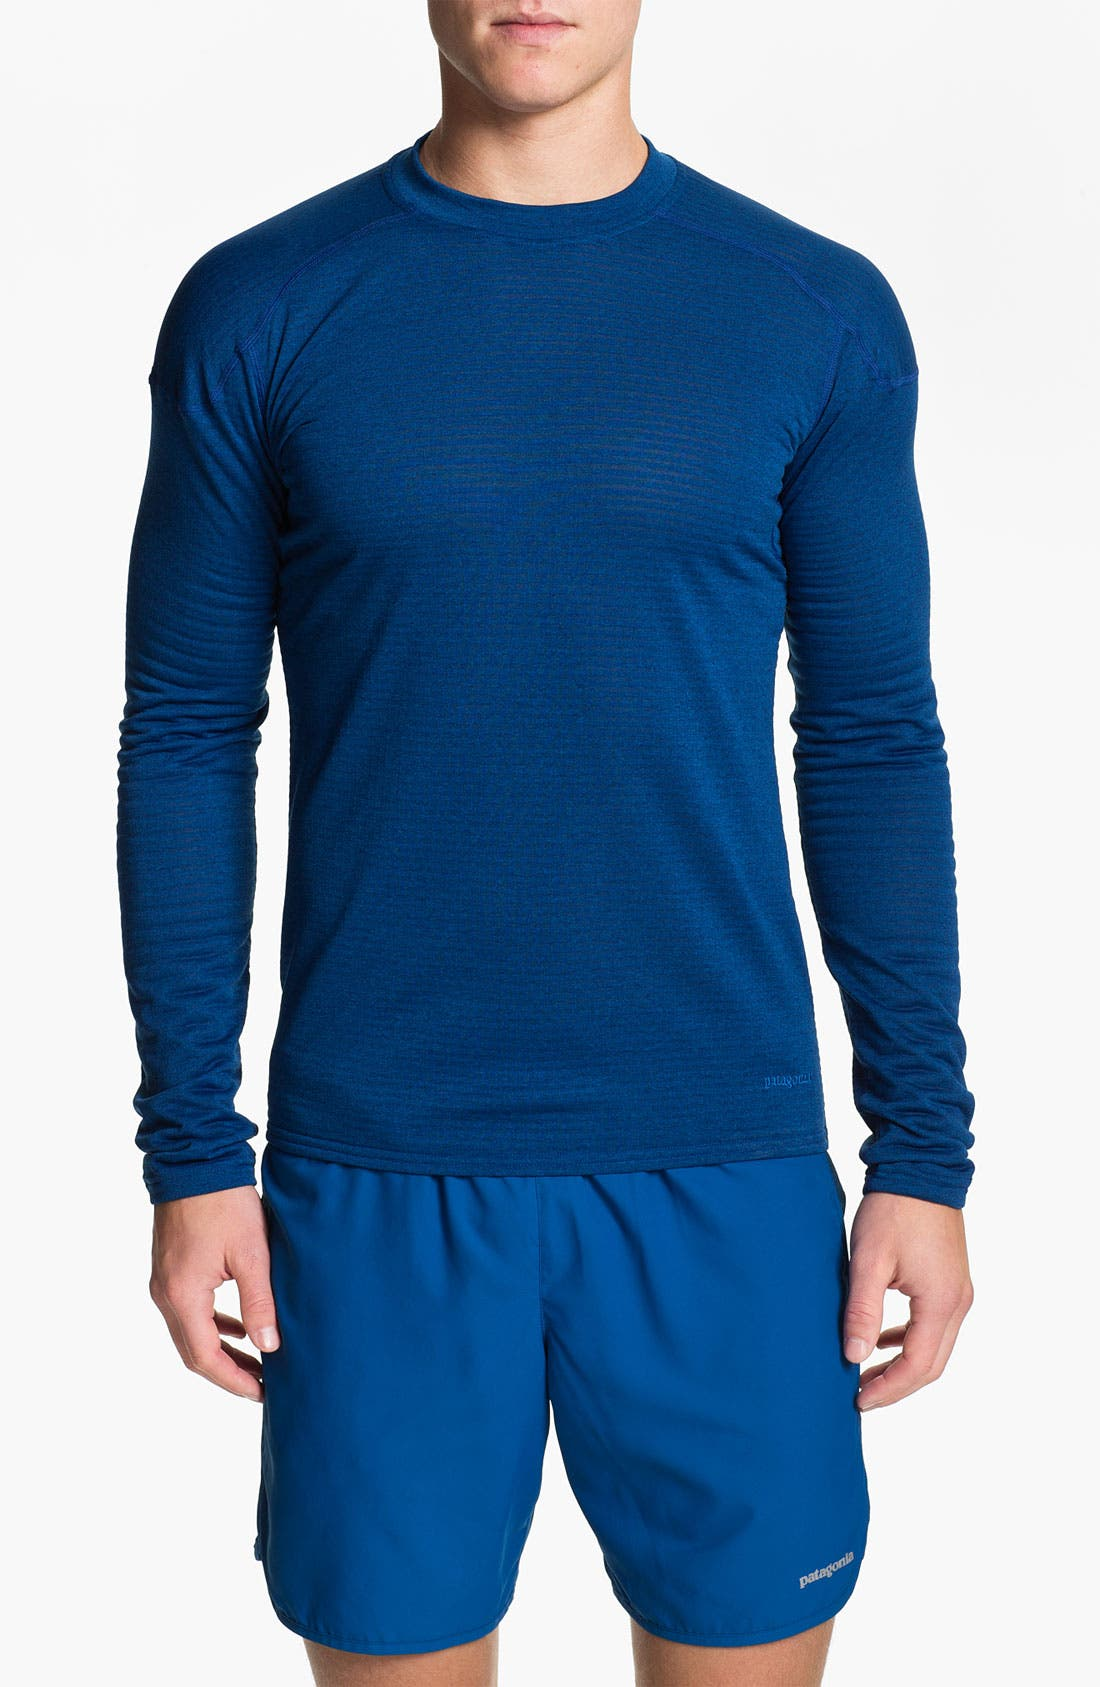 Main Image - Patagonia 'Capilene® 4' Expedition Weight Crewneck Top (Online Only)